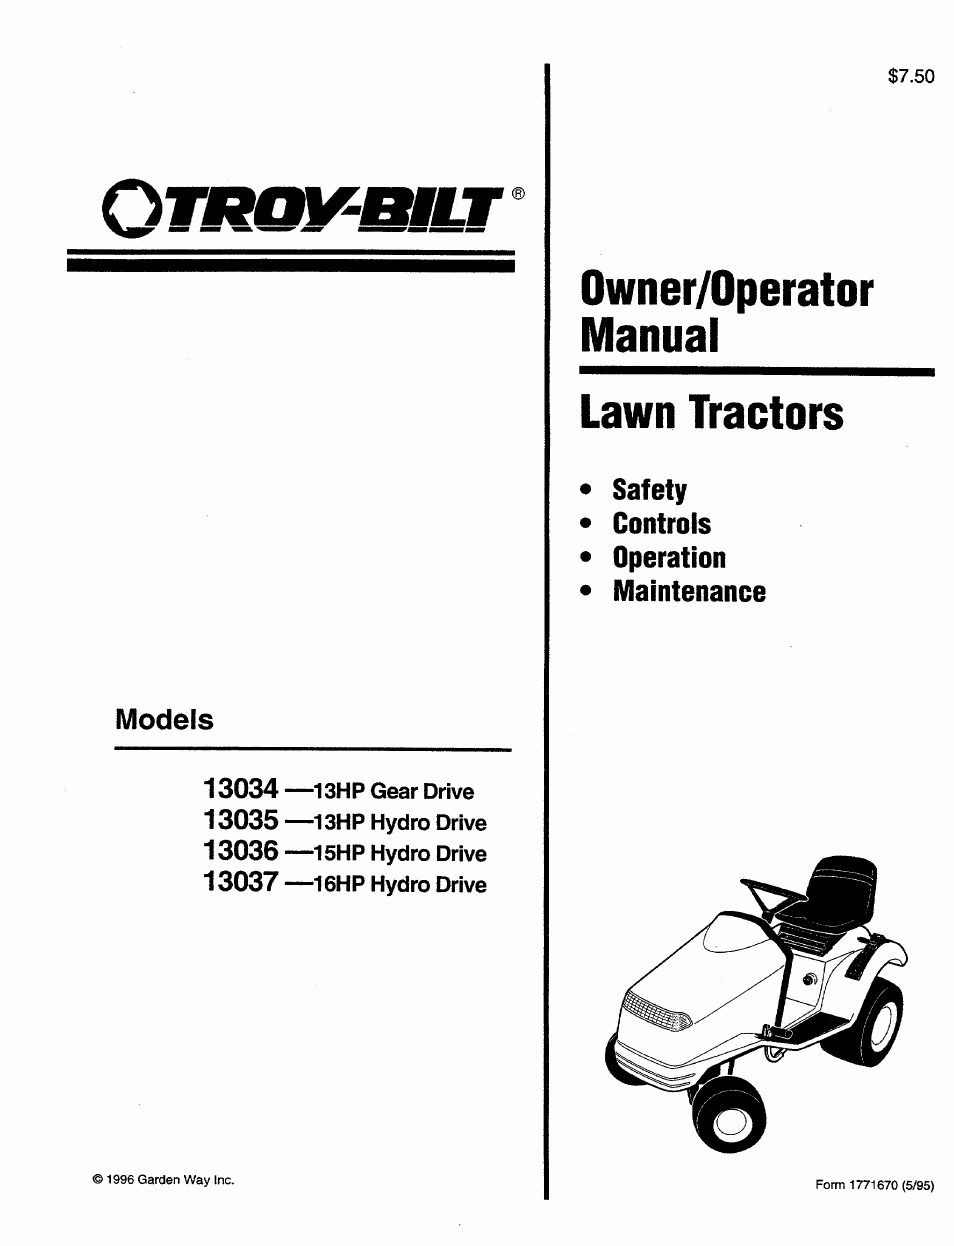 Troy Bilt 13034 User Manual | 36 Pages | Also For: 13037, 13036, 3035, 13035